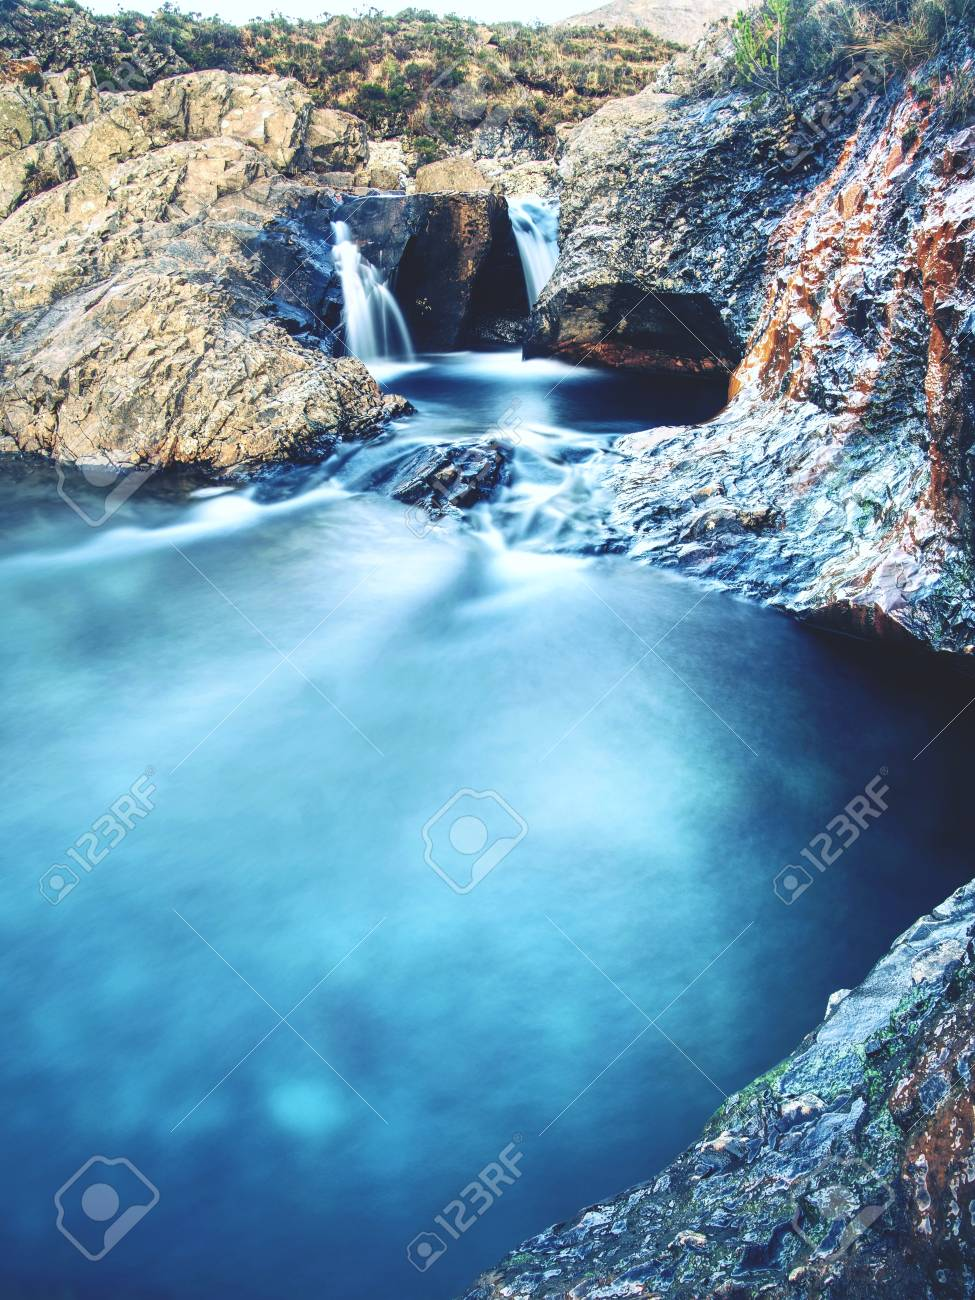 Blue water of river Brittle in trail known as Fairy pools. The mountain river cut in soft rocks colorful pools. Bellow the mountains of Glenbrittle on